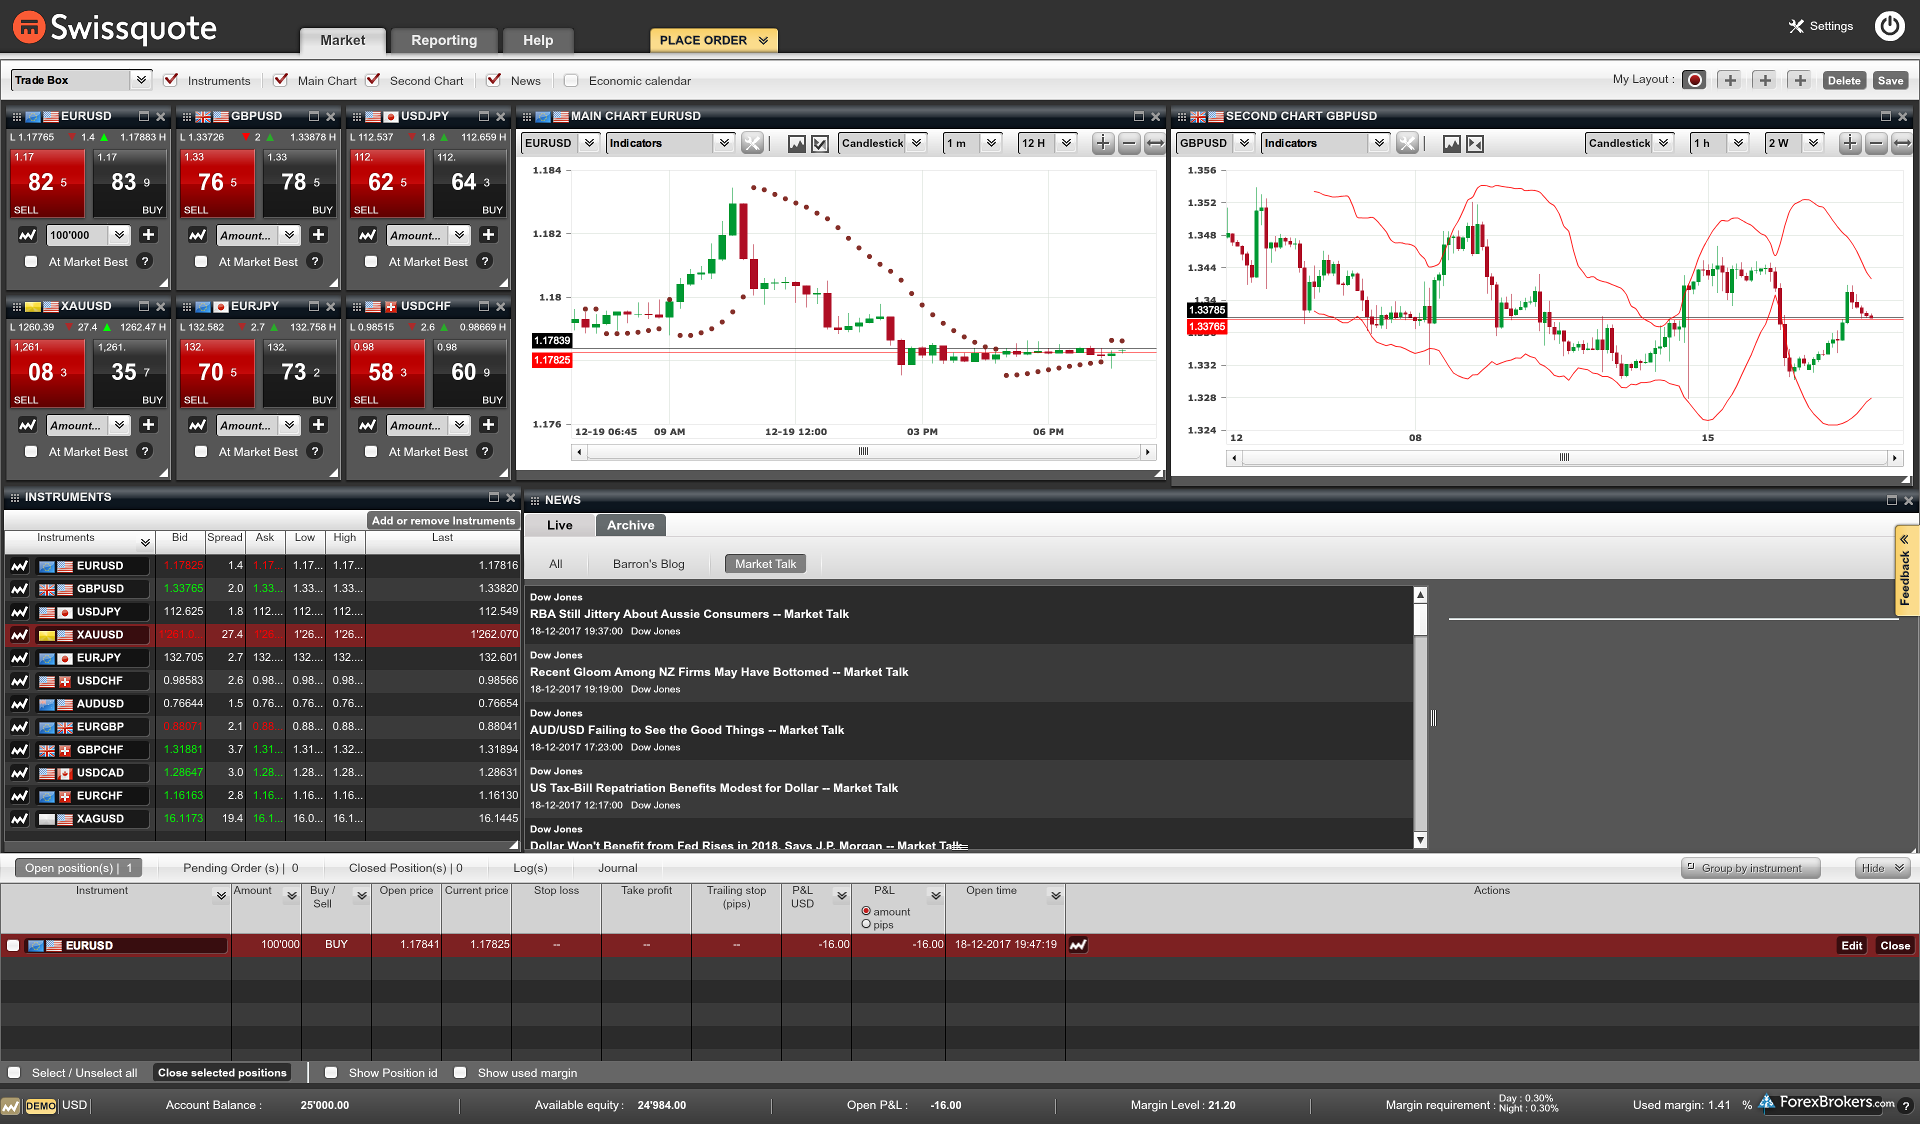 Swissquote Advanced Trader web platform